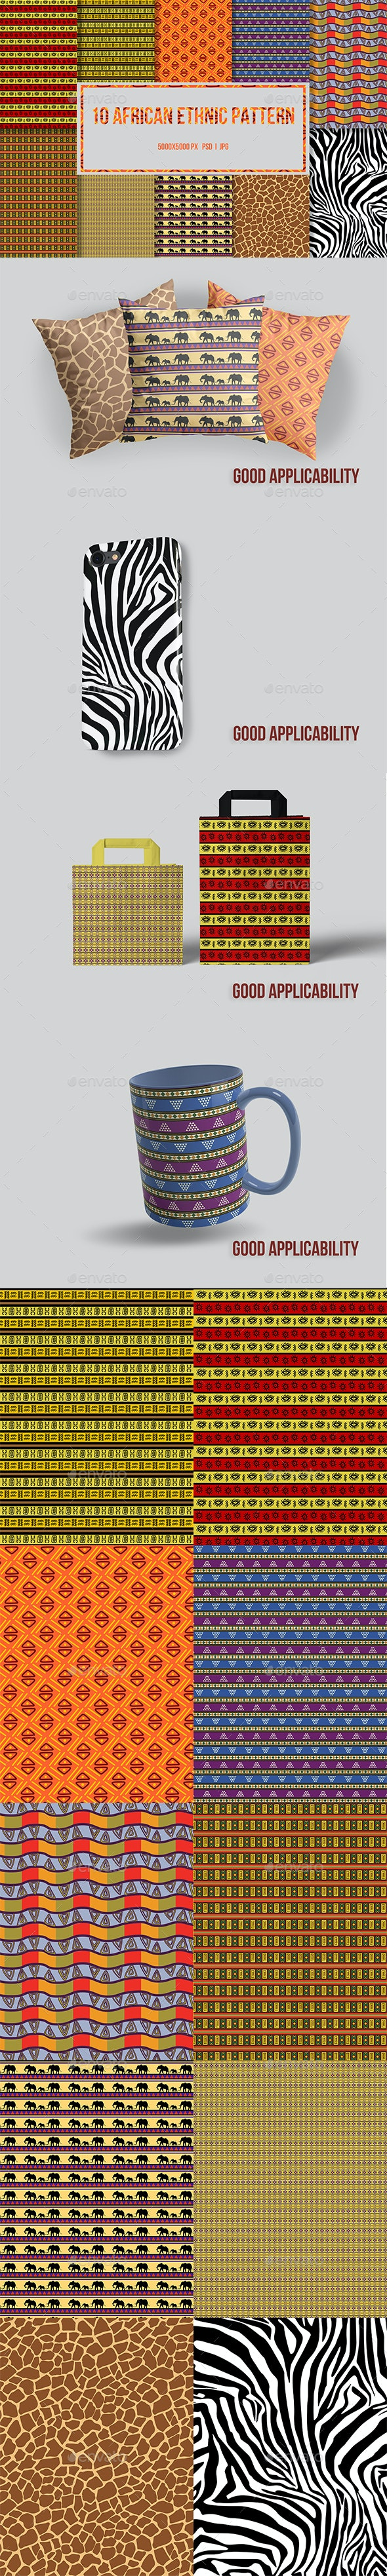 10 African Ethnic Pattern - Patterns Backgrounds